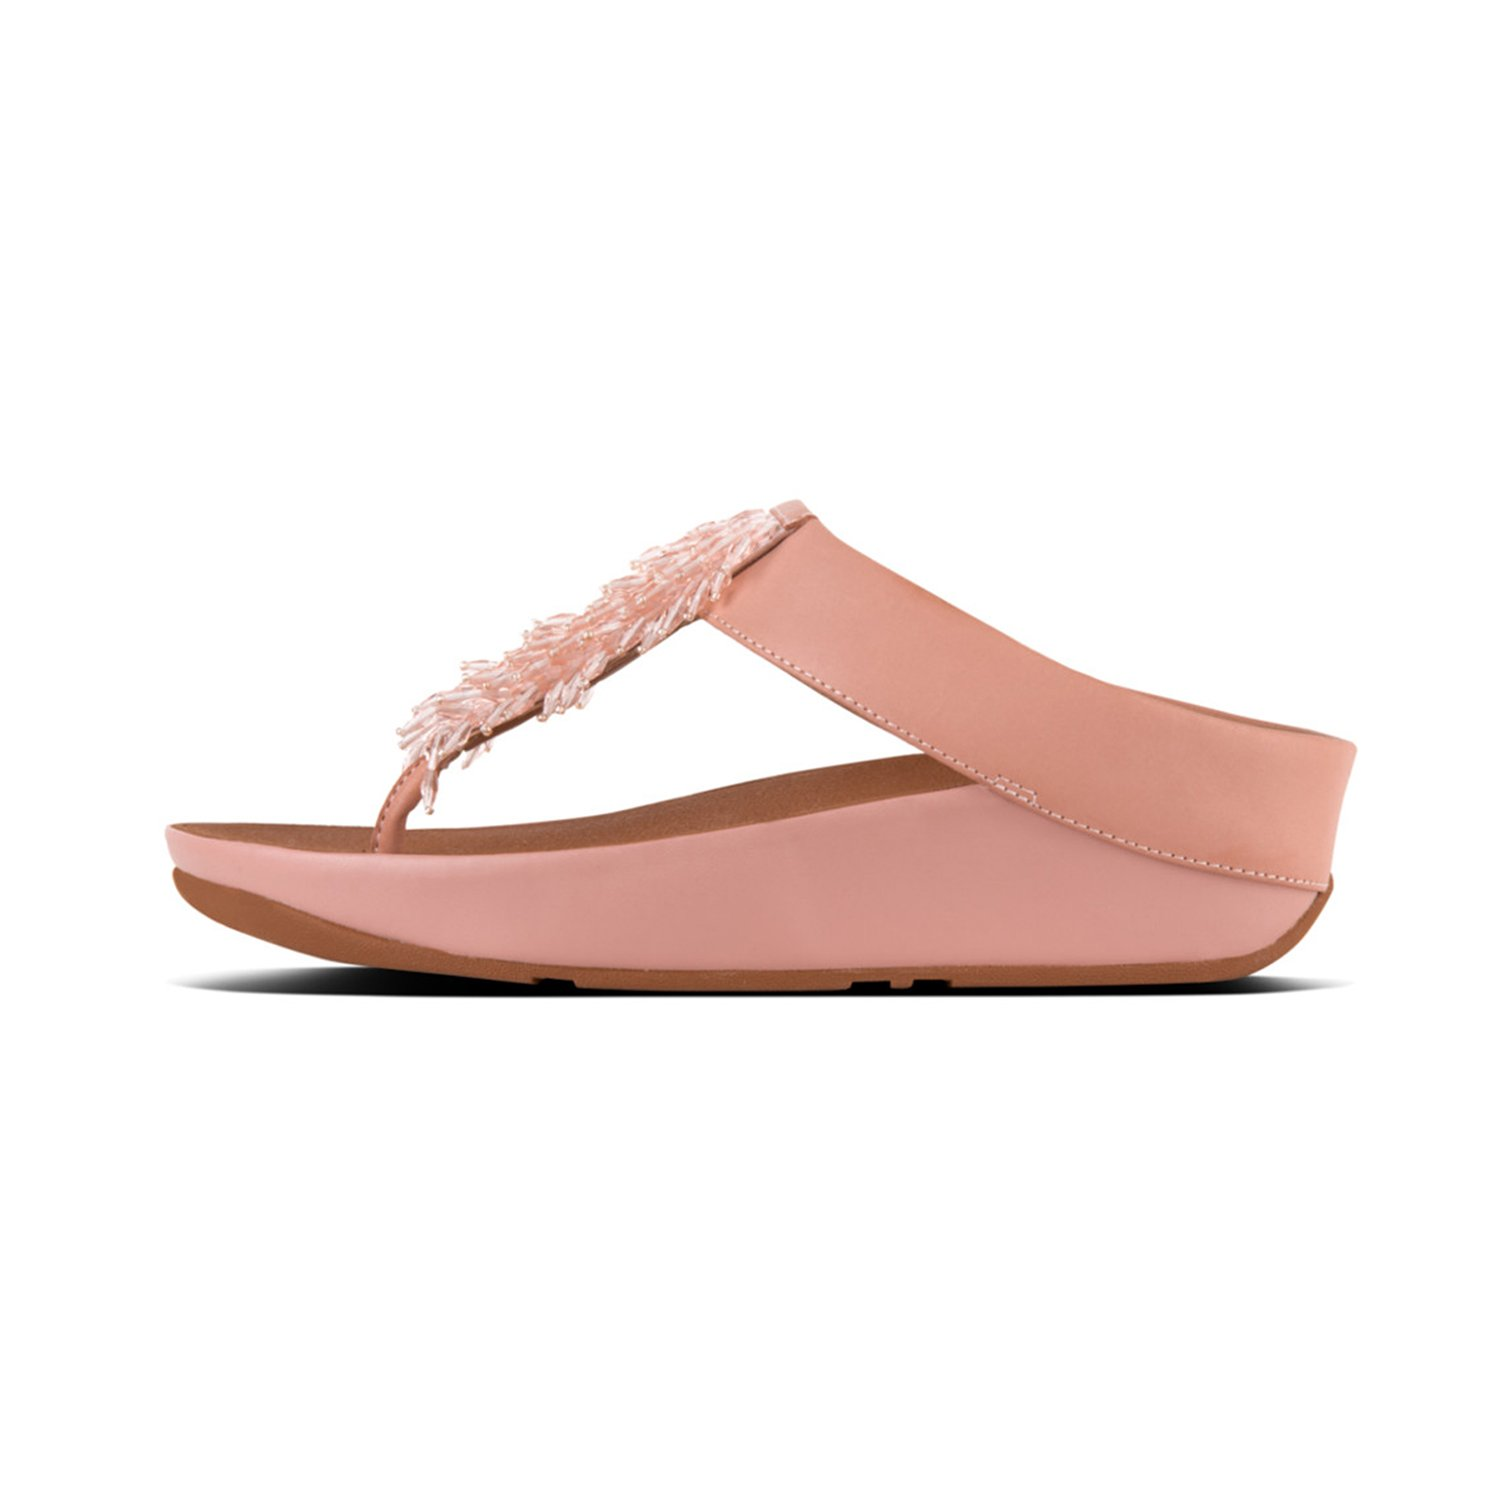 FitFlop (Dusky Damen Rumba TM Toe-Thong Sandales Crystal Zehentrenner, Pink (Dusky FitFlop Pink 535) 94c2db